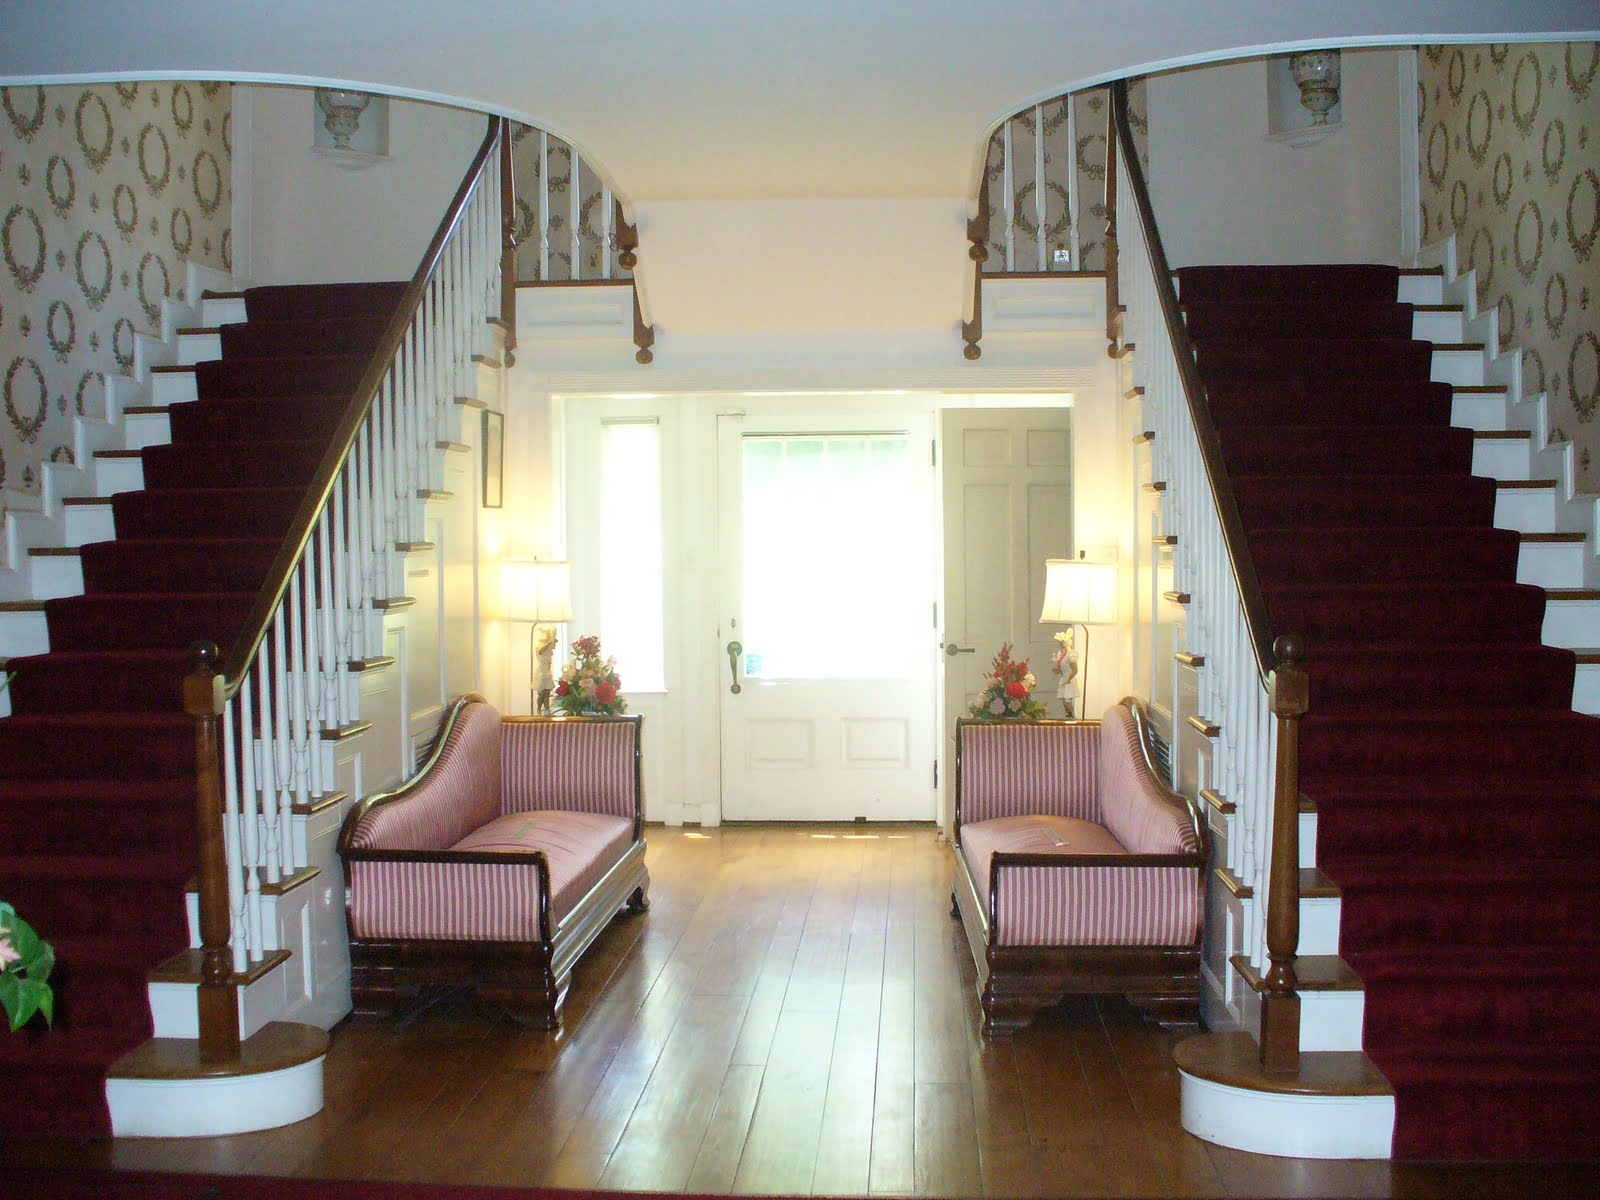 This Is The Front Room Where Humphrey And Lauren Exchanged Vows Had Wedding Reception They Stood Right In Center Part Of Two Staircases